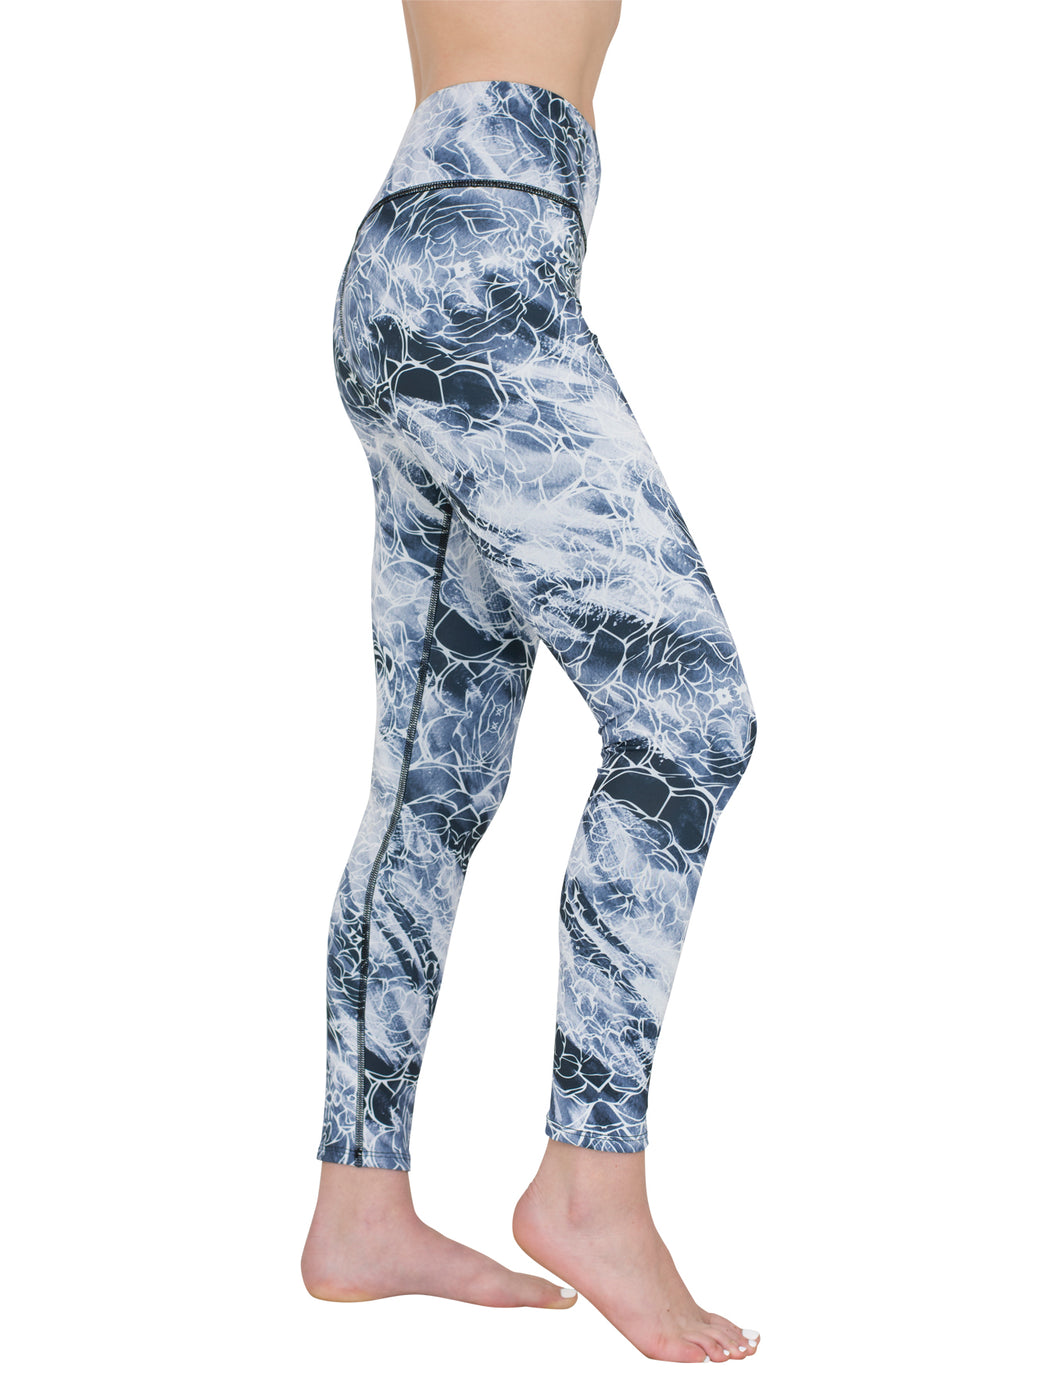 Luxe Mineral Infused Leggings - Fiore